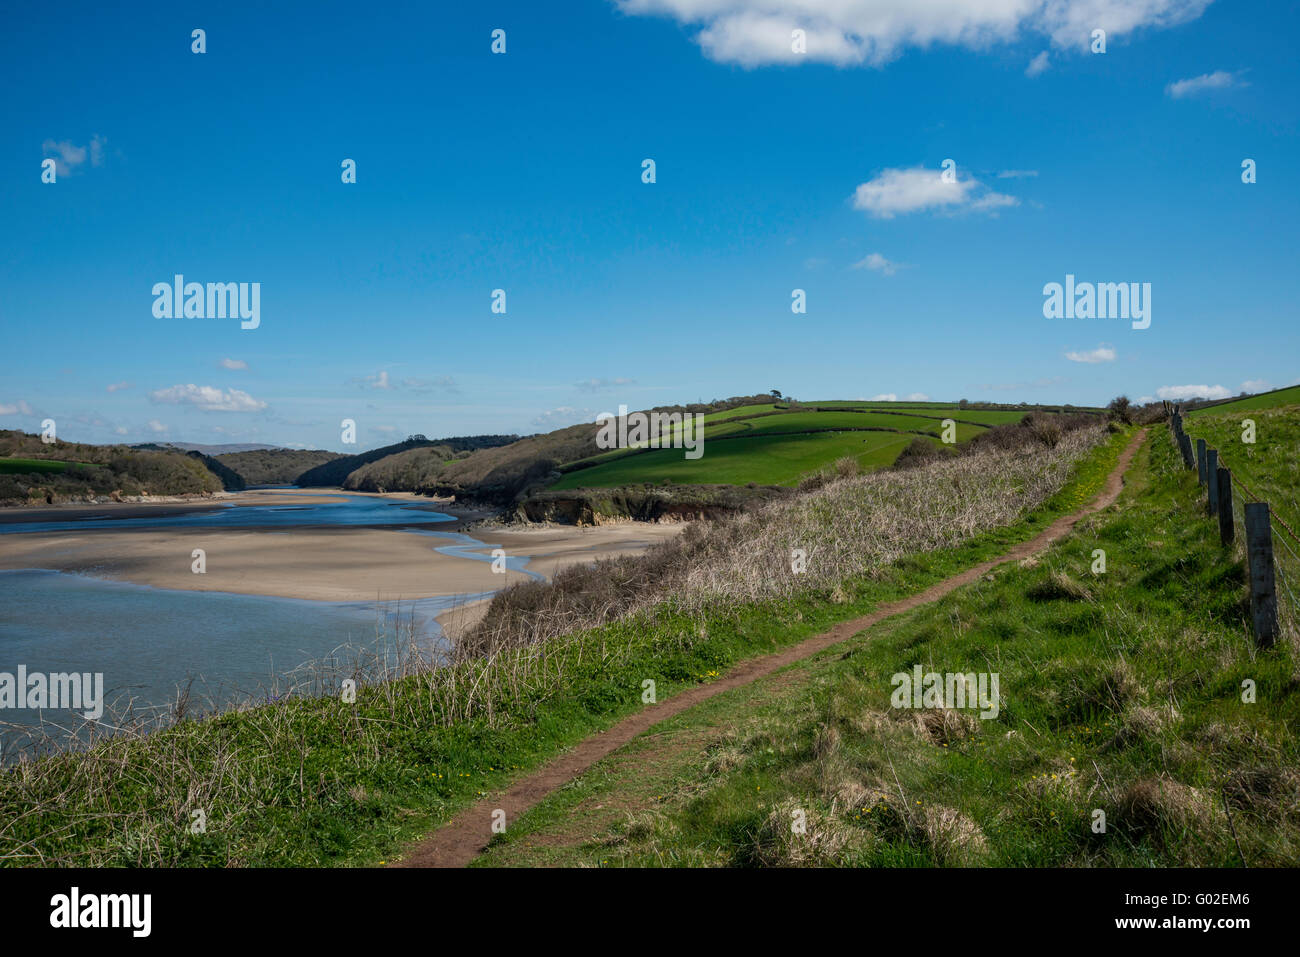 Mouth of the Erme Estuary looking upstream toward Wonwell beach and the South West Coastal footpath. - Stock Image